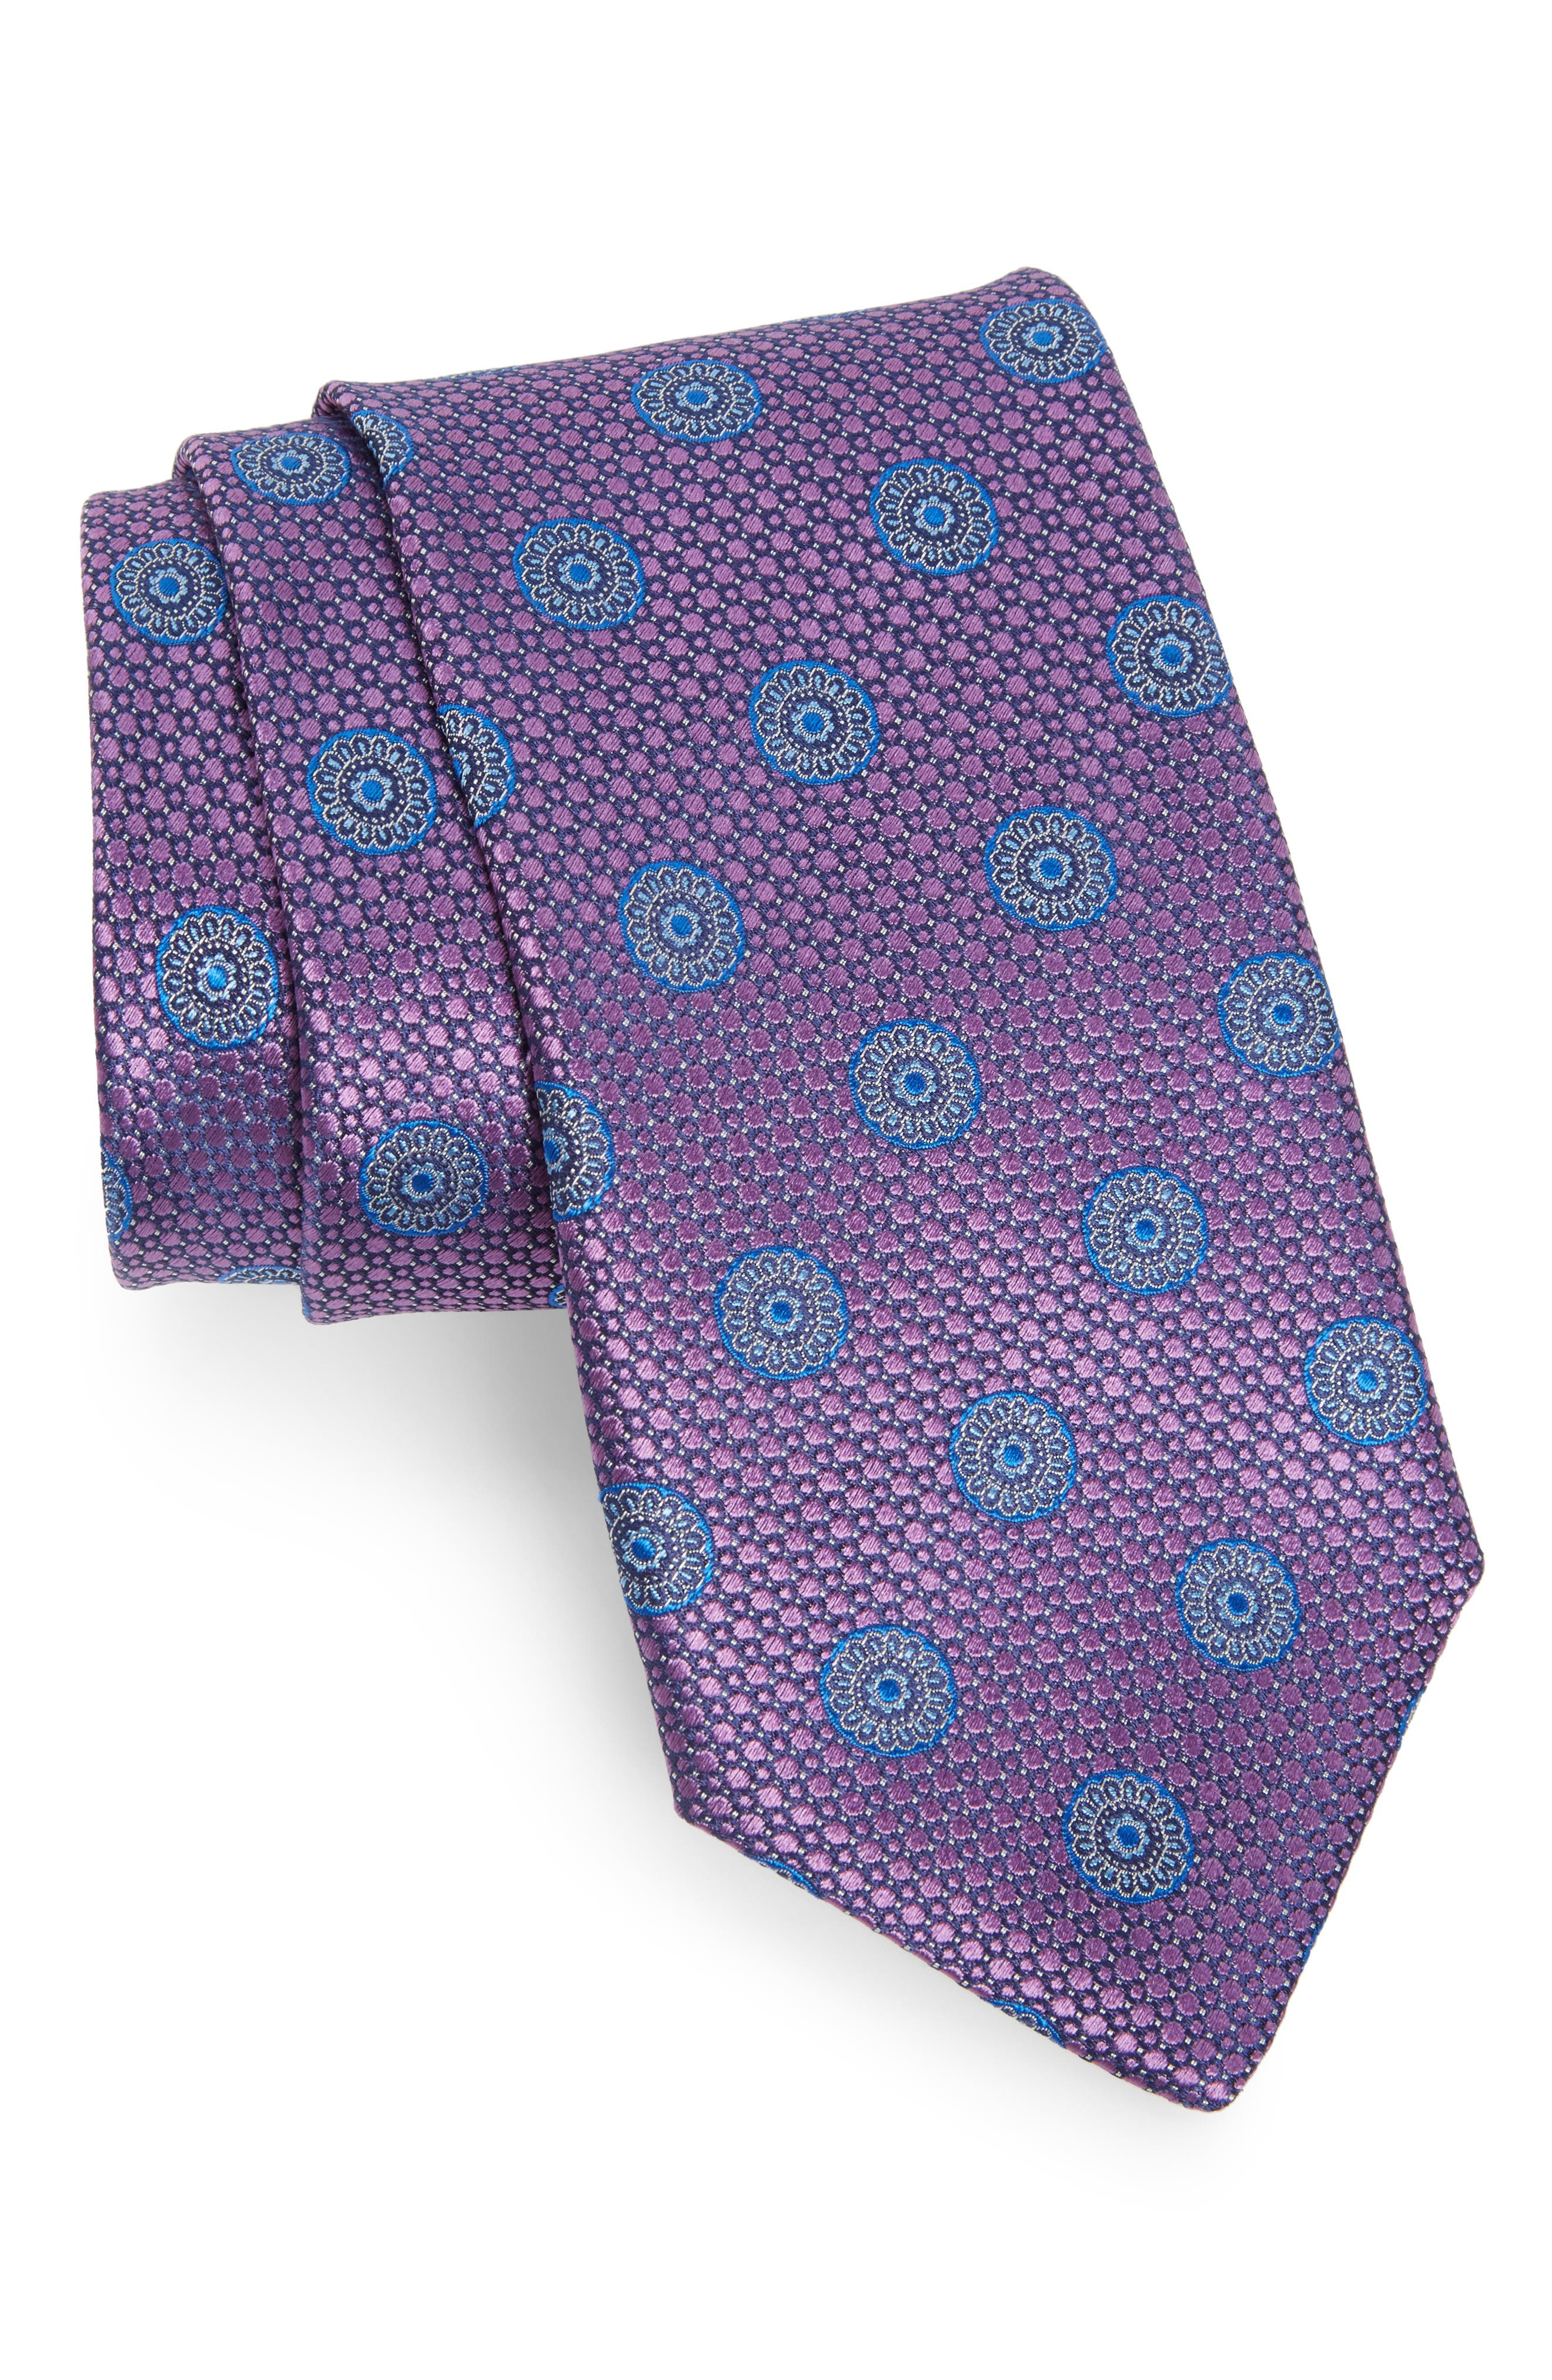 Medallion Silk Tie,                         Main,                         color, Purple